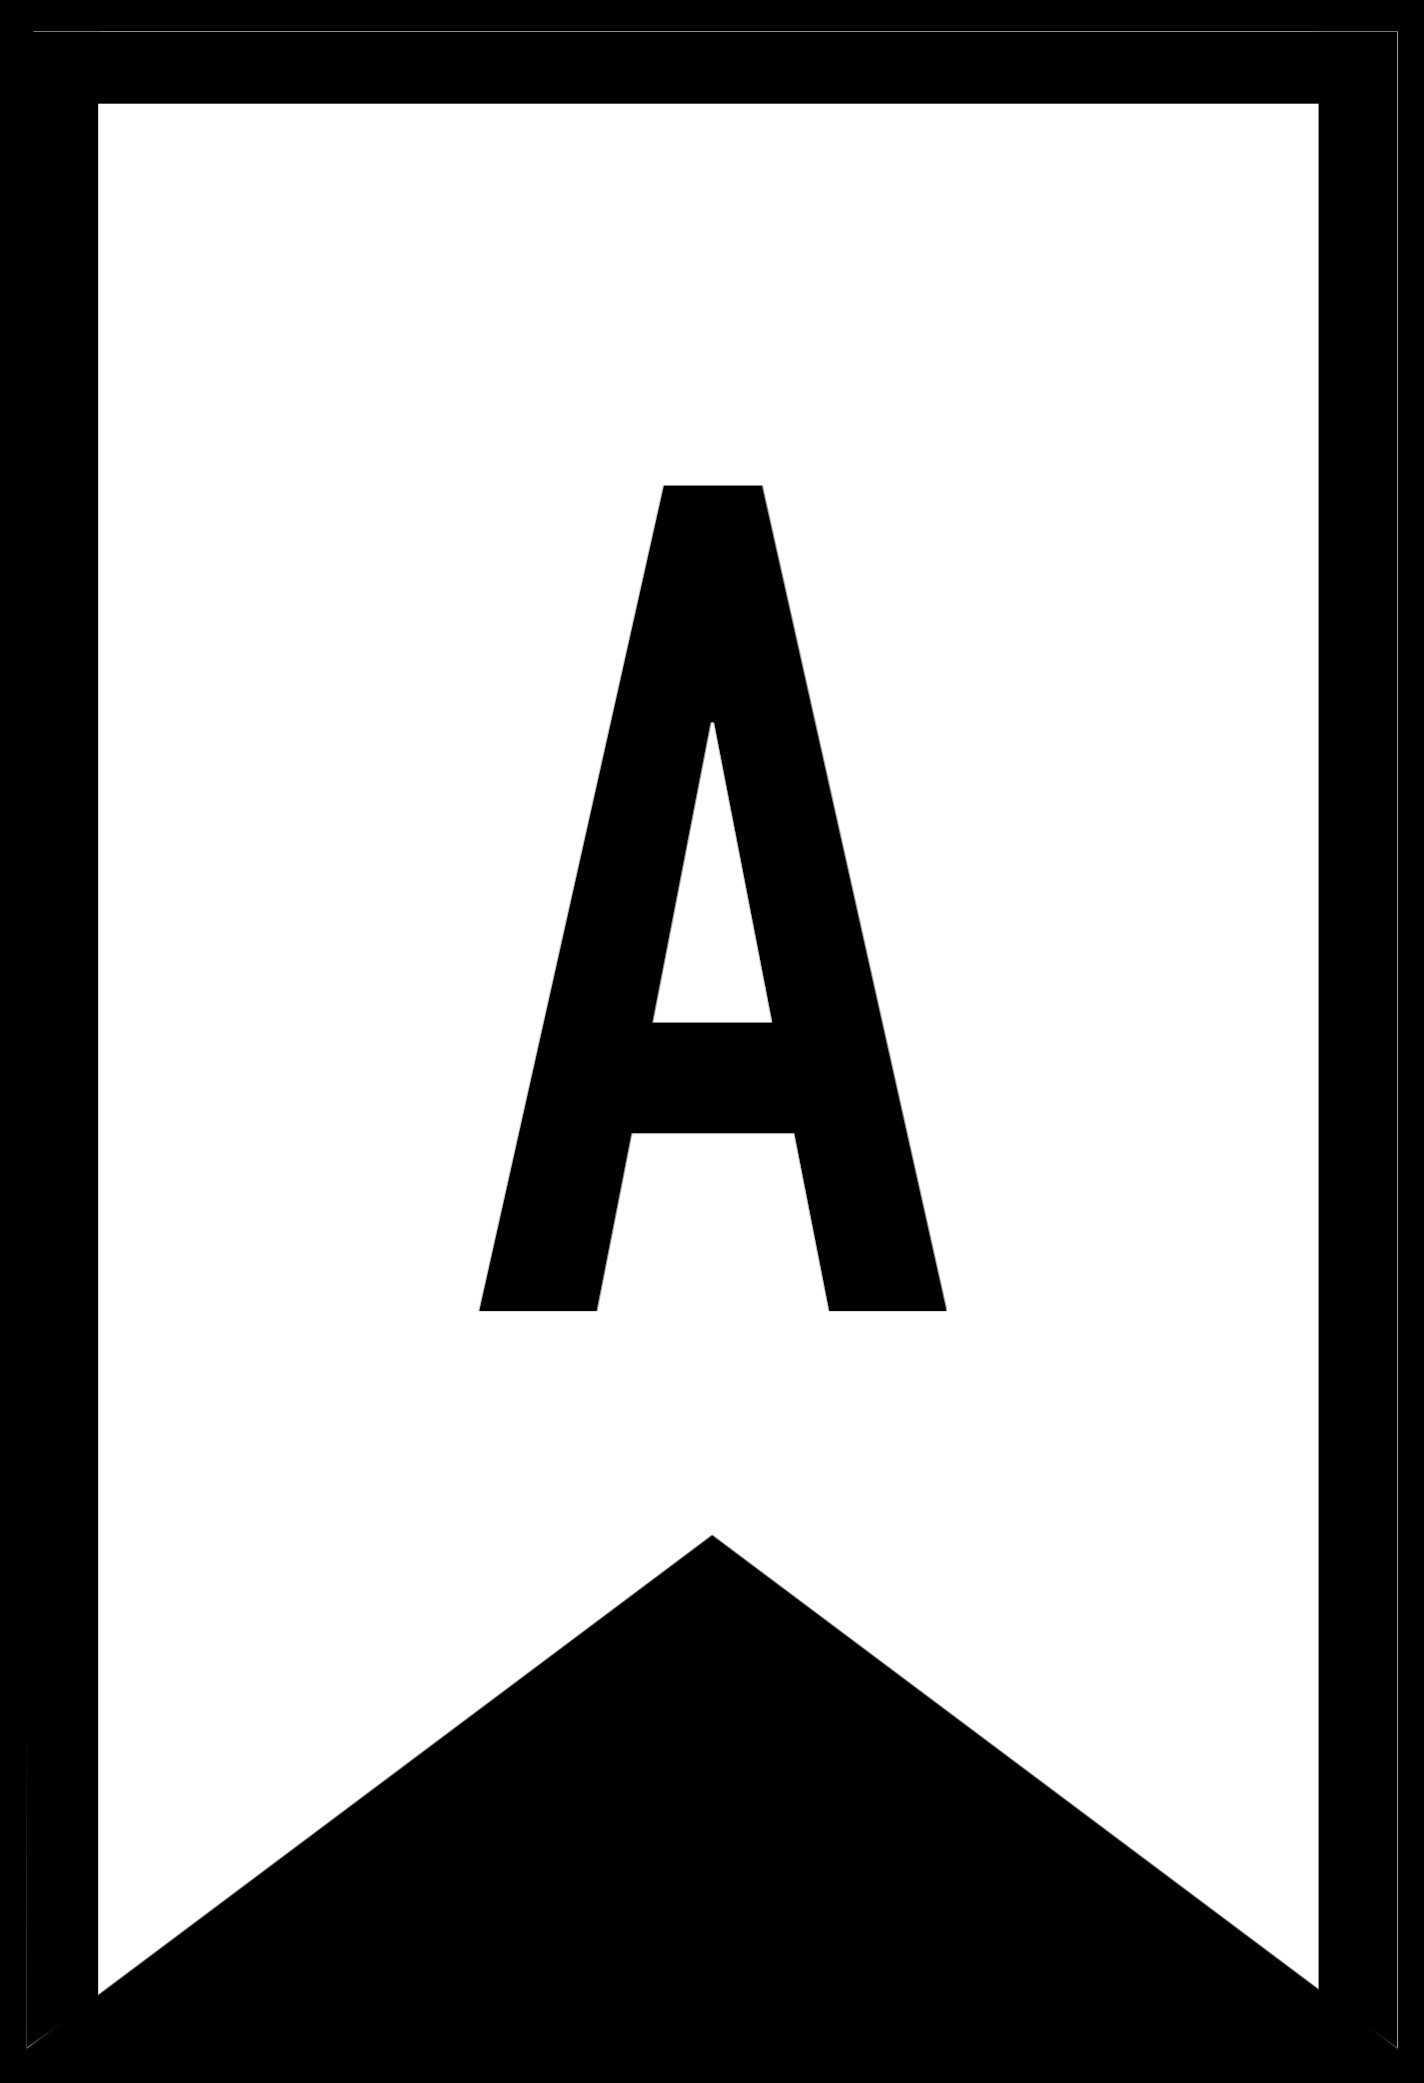 Free Printable Letters For Banners Entire Alphabet Letter inside Free Letter Templates For Banners